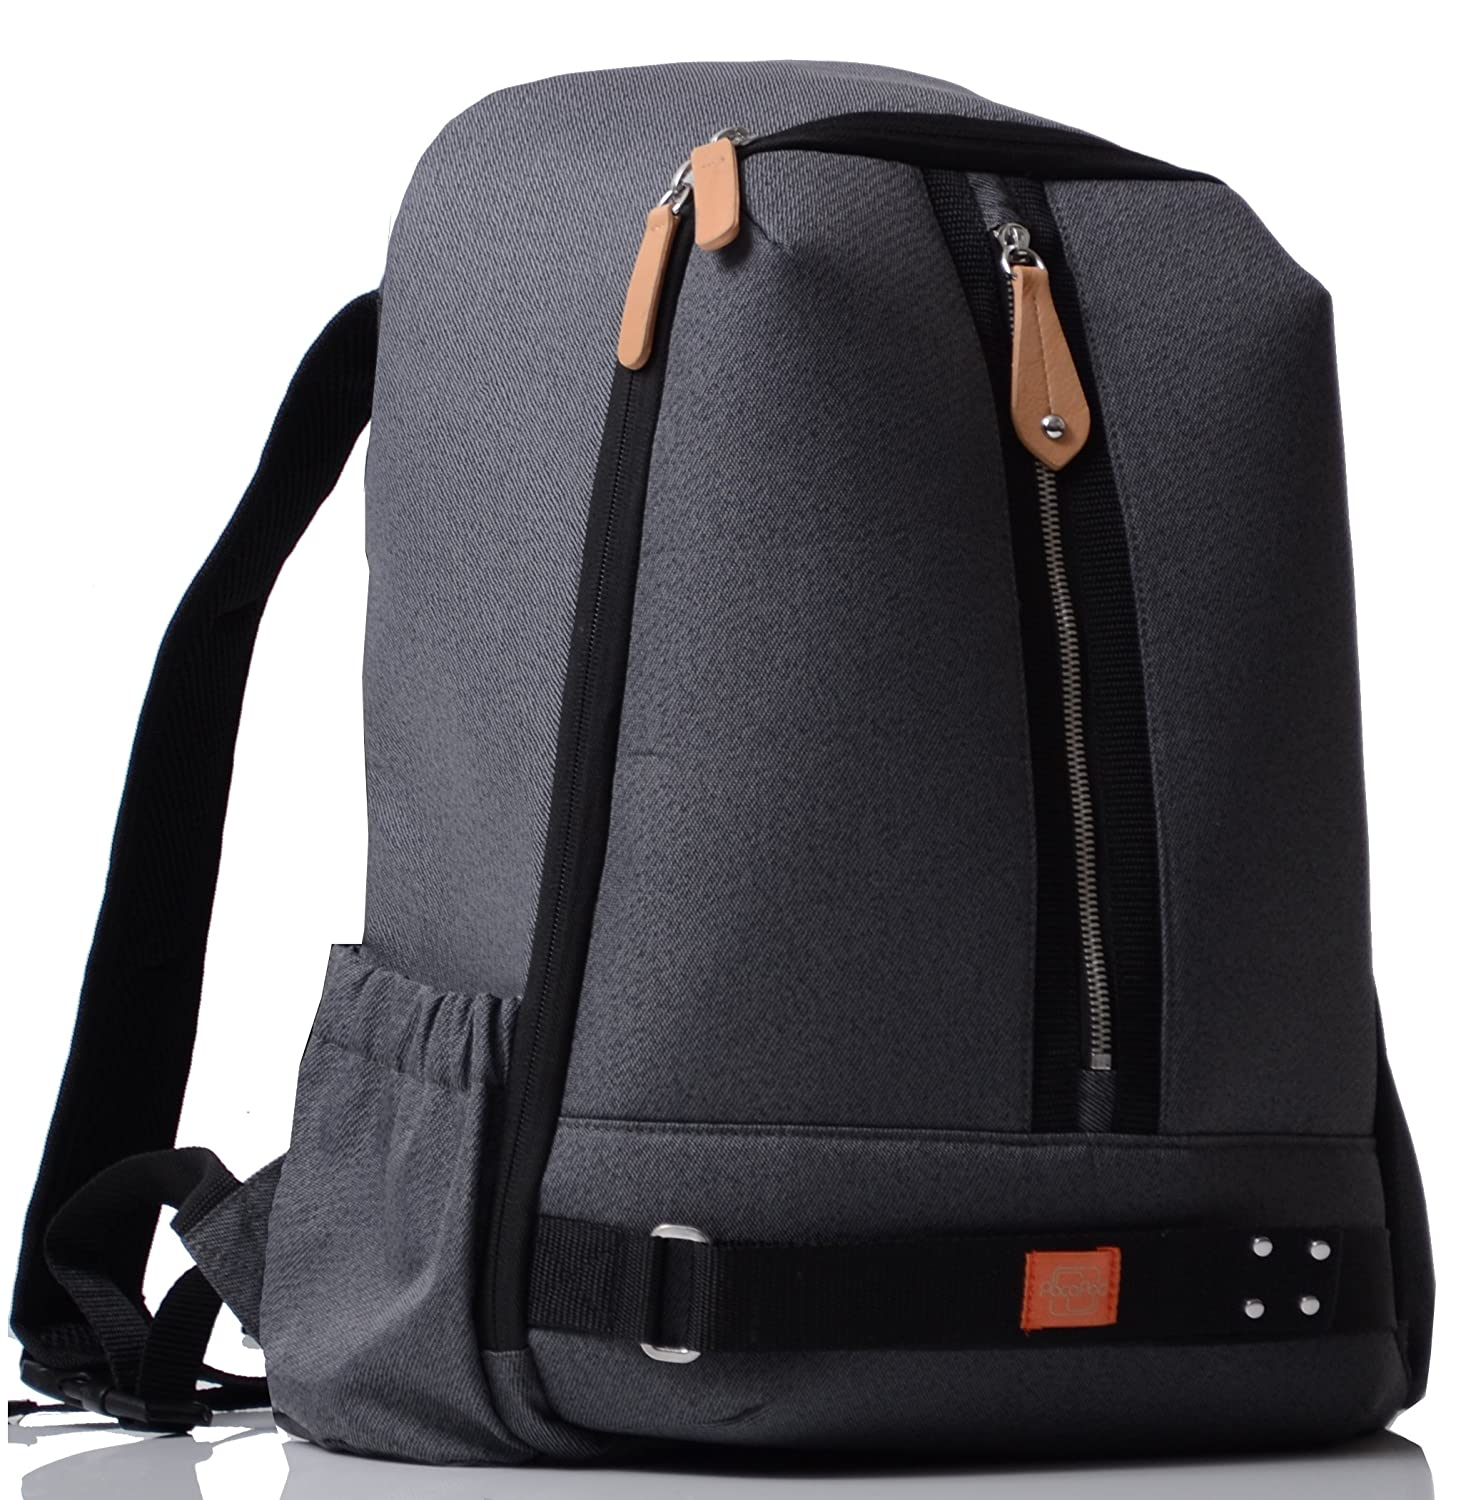 fef19b51b6f2 PacaPod Picos Pack Black Charcoal Designer Baby Changing Bag - Unisex  Luxury Black Backpack 3 in 1 Organising System  Amazon.co.uk  Baby